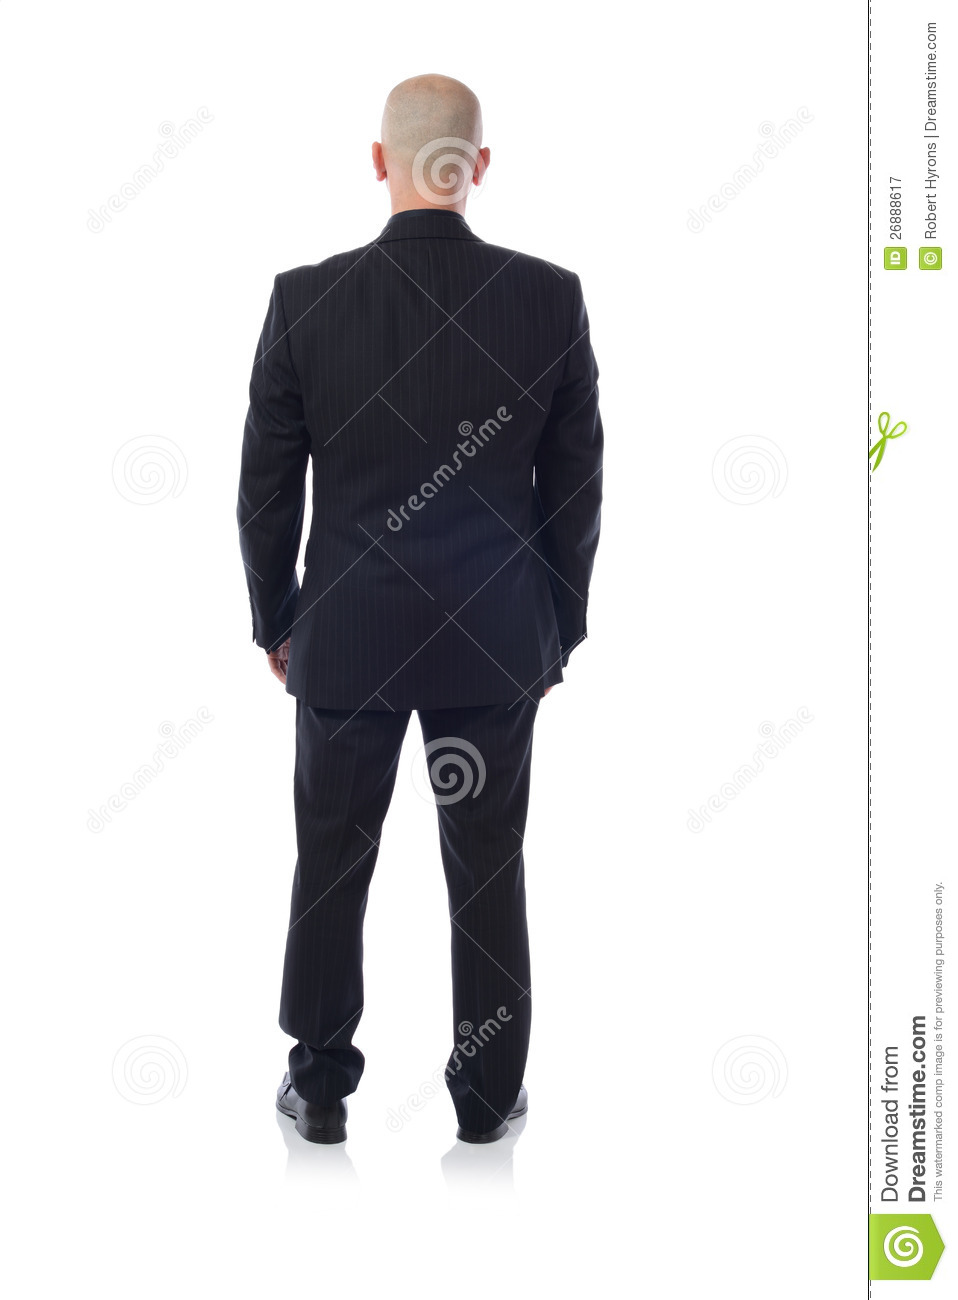 Man In Suit From Behind Royalty Free Stock Photography